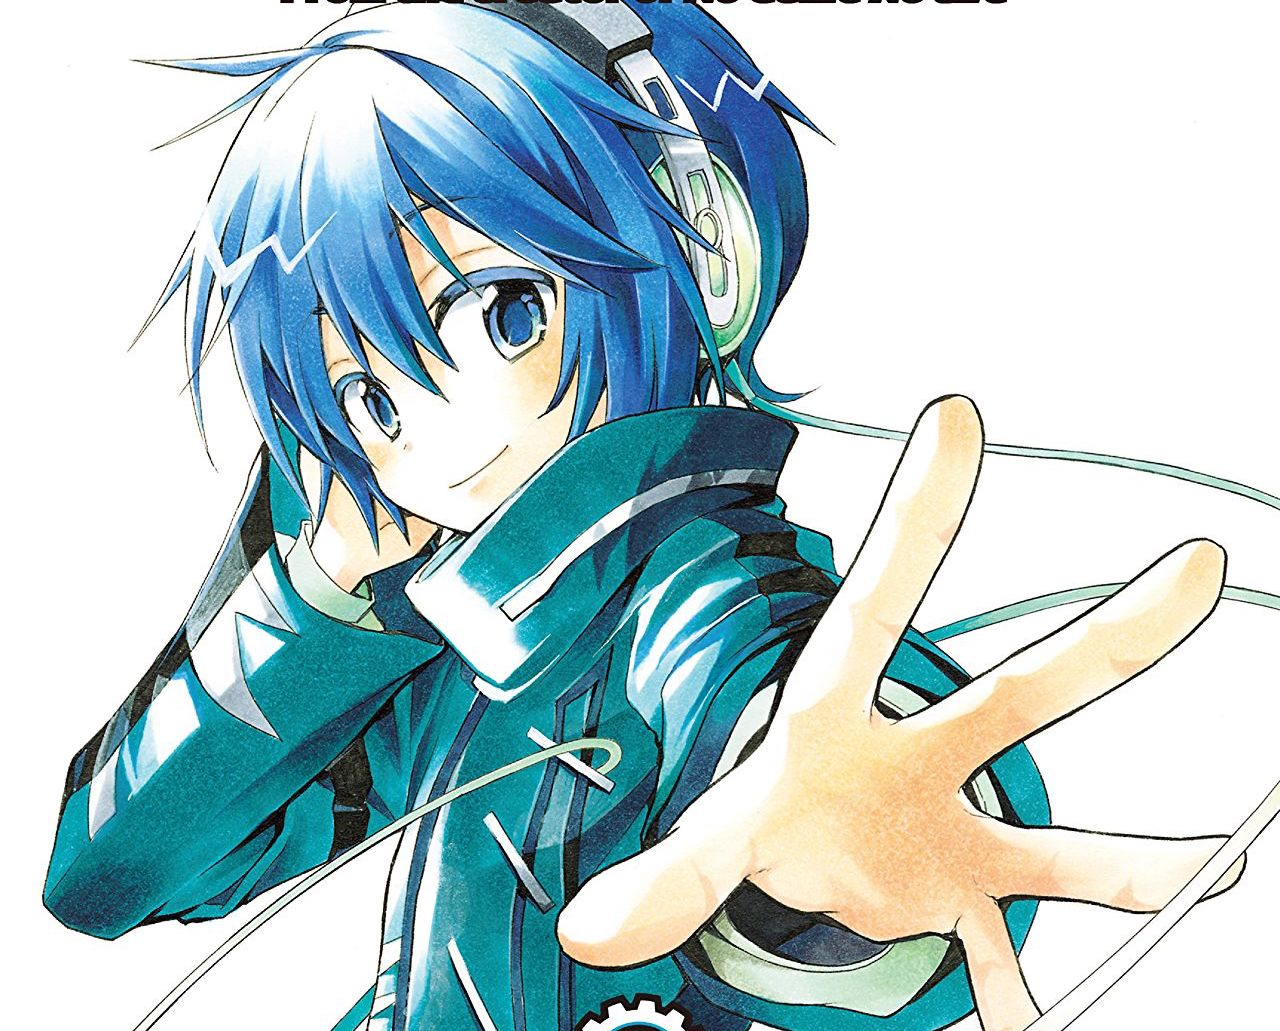 Clockwork Planet Vol. 2 Review